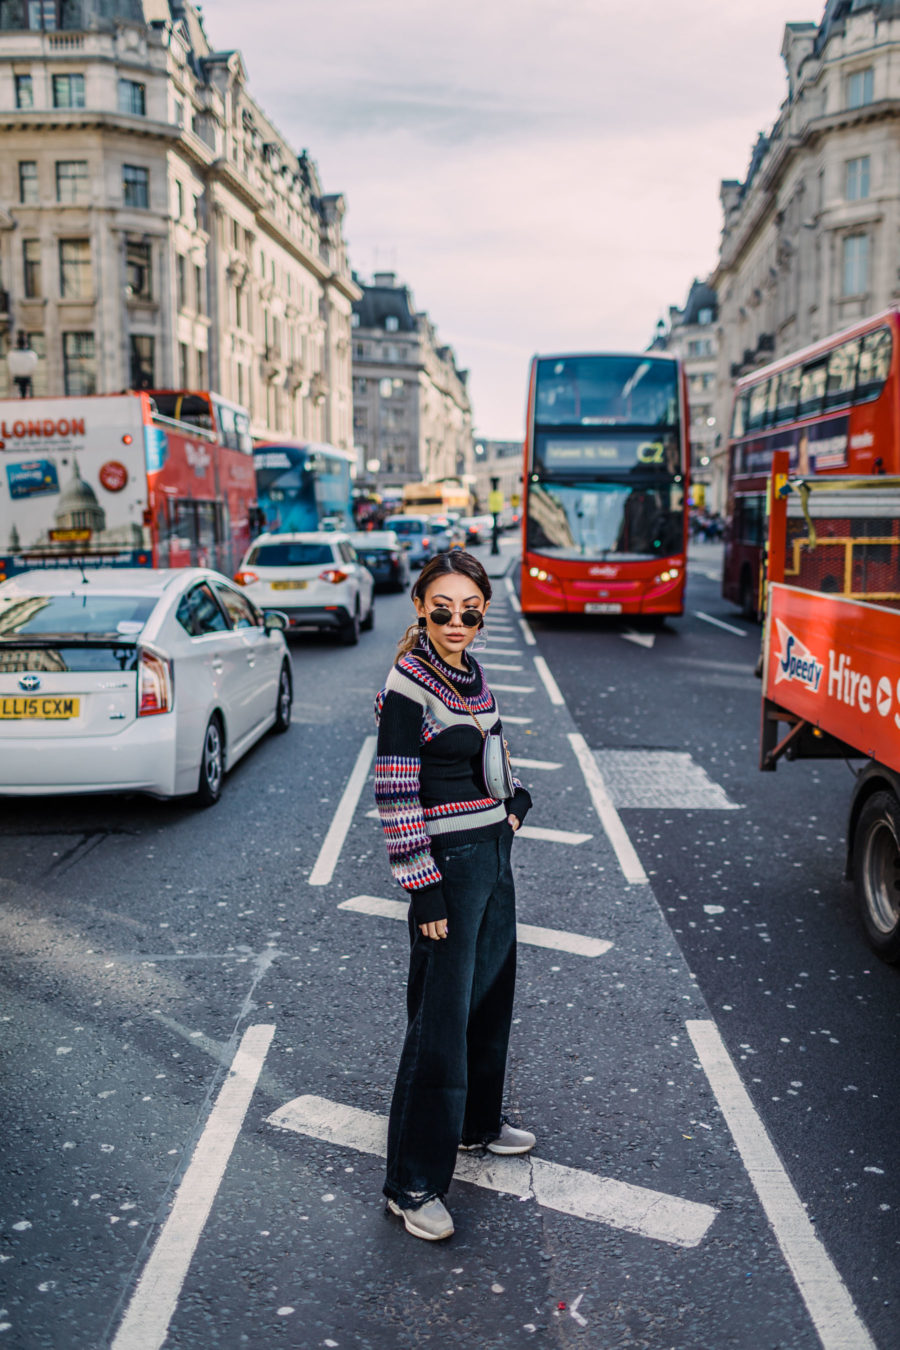 how to prepare for lfw, how to prepare for fashion week, lfw street style // Notjessfashion.com